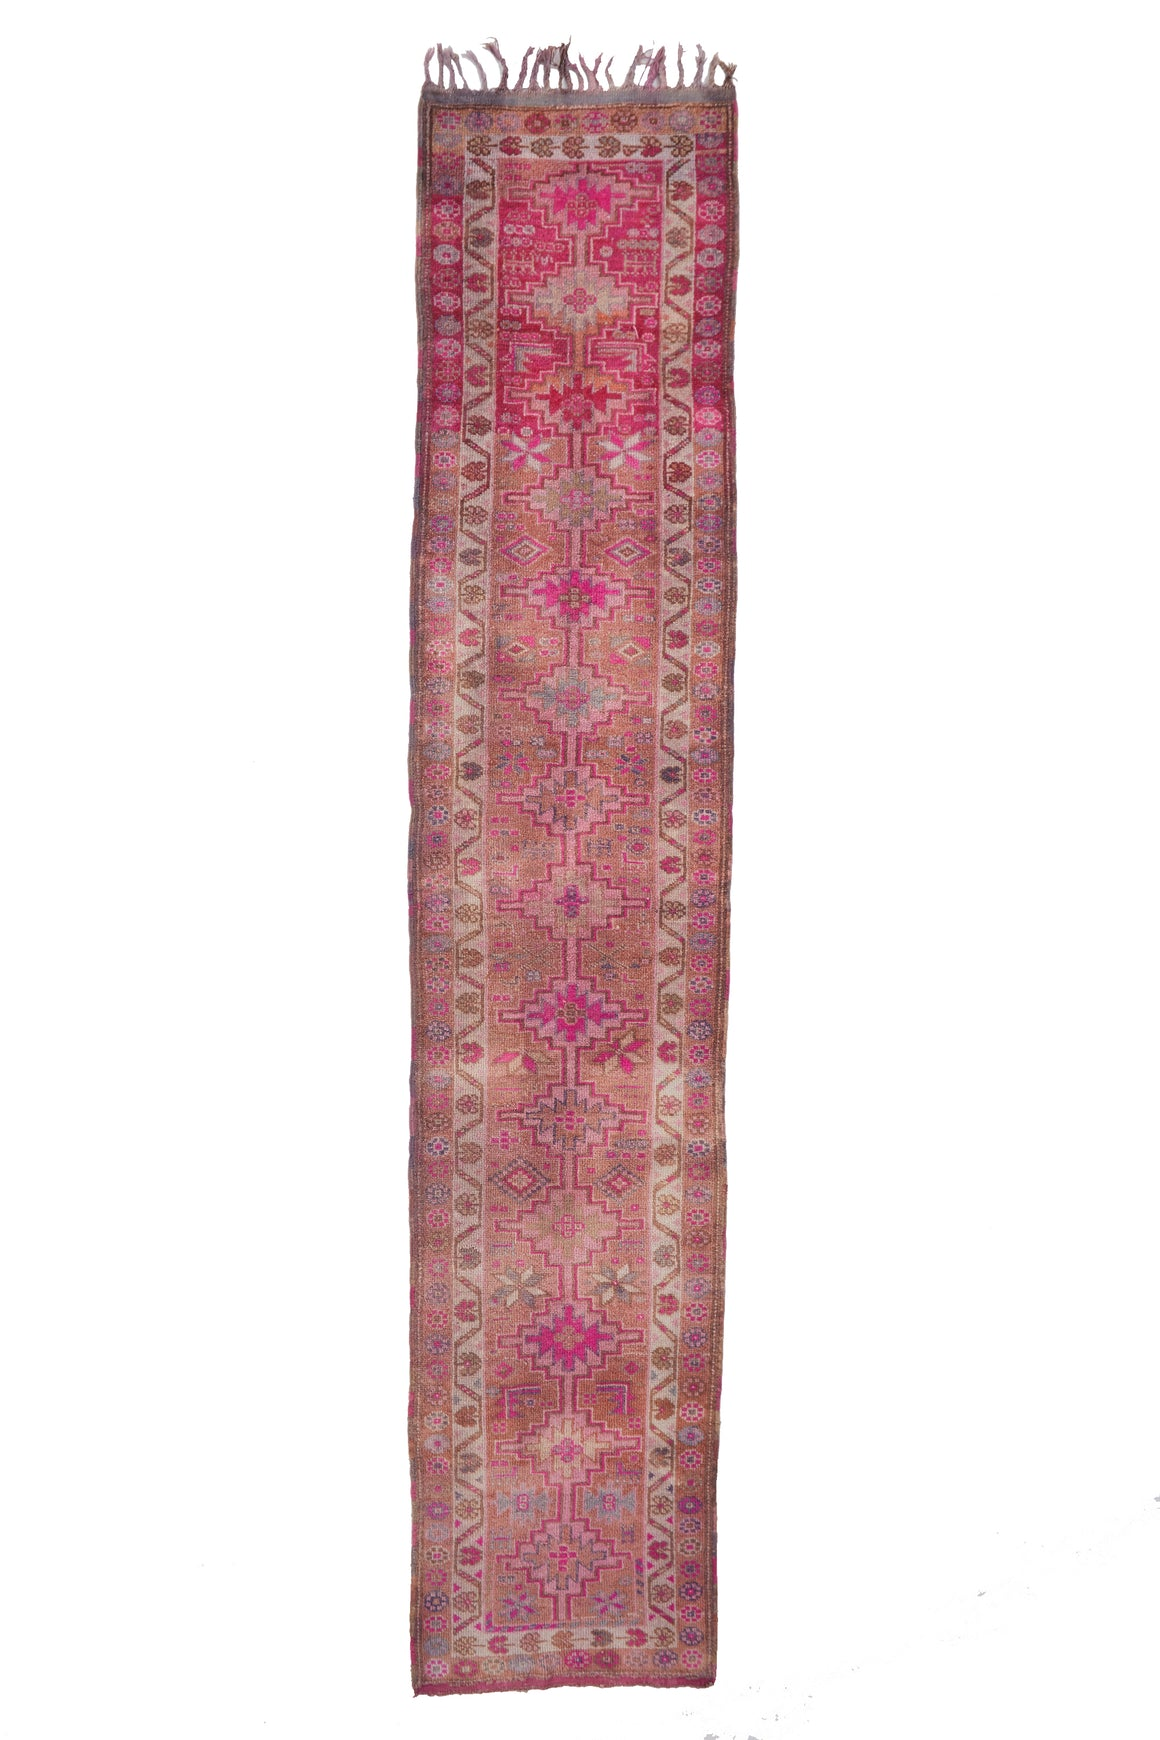 "'Hibiscus' Vintage Turkish Ombre Runner - 2'9"" x 14'2"" - Canary Lane - Curated Textiles"